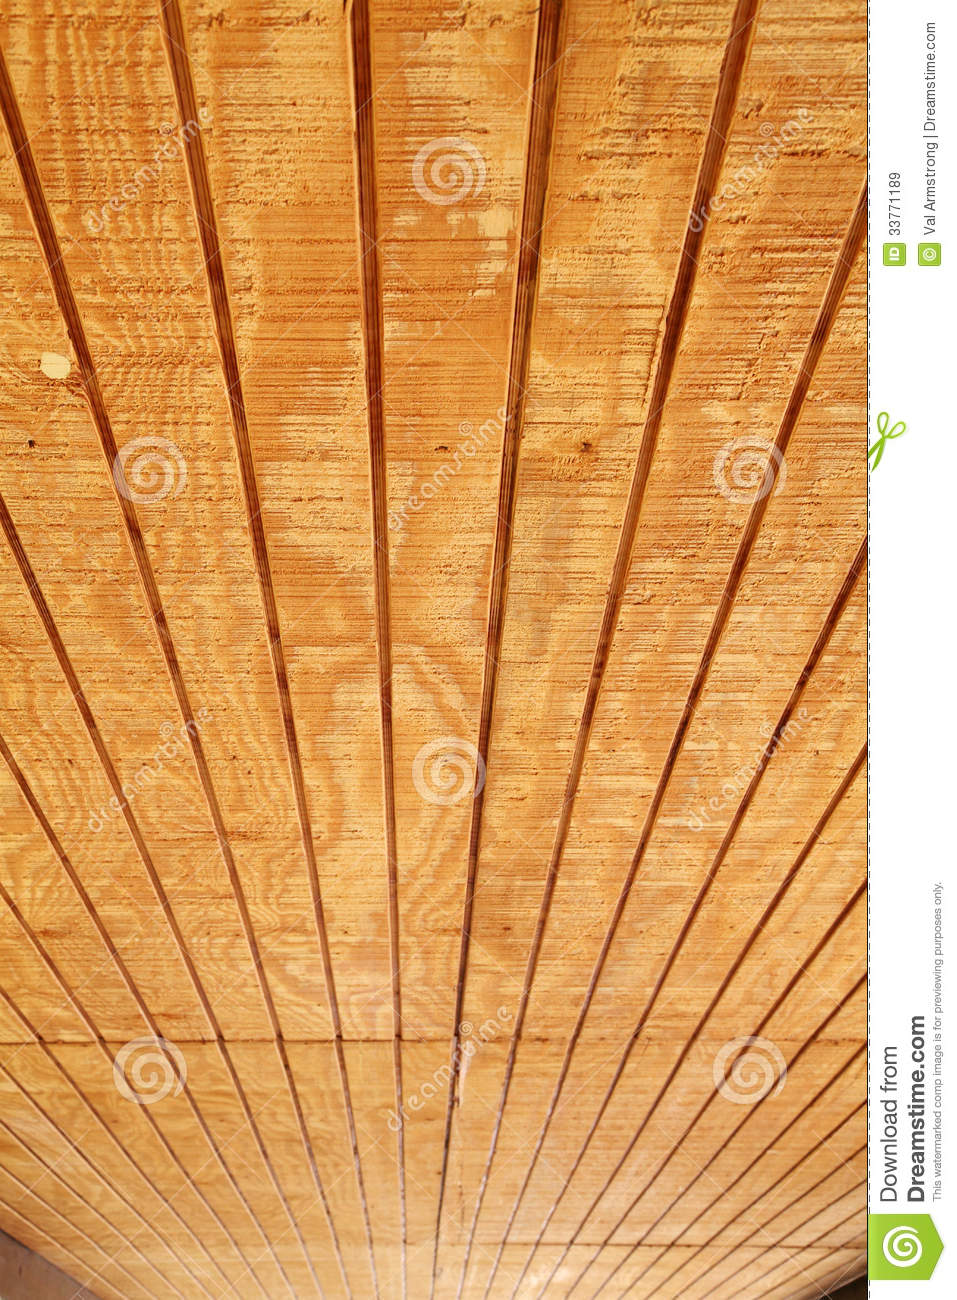 tongue and groove wood ceiling royalty free stock images - image